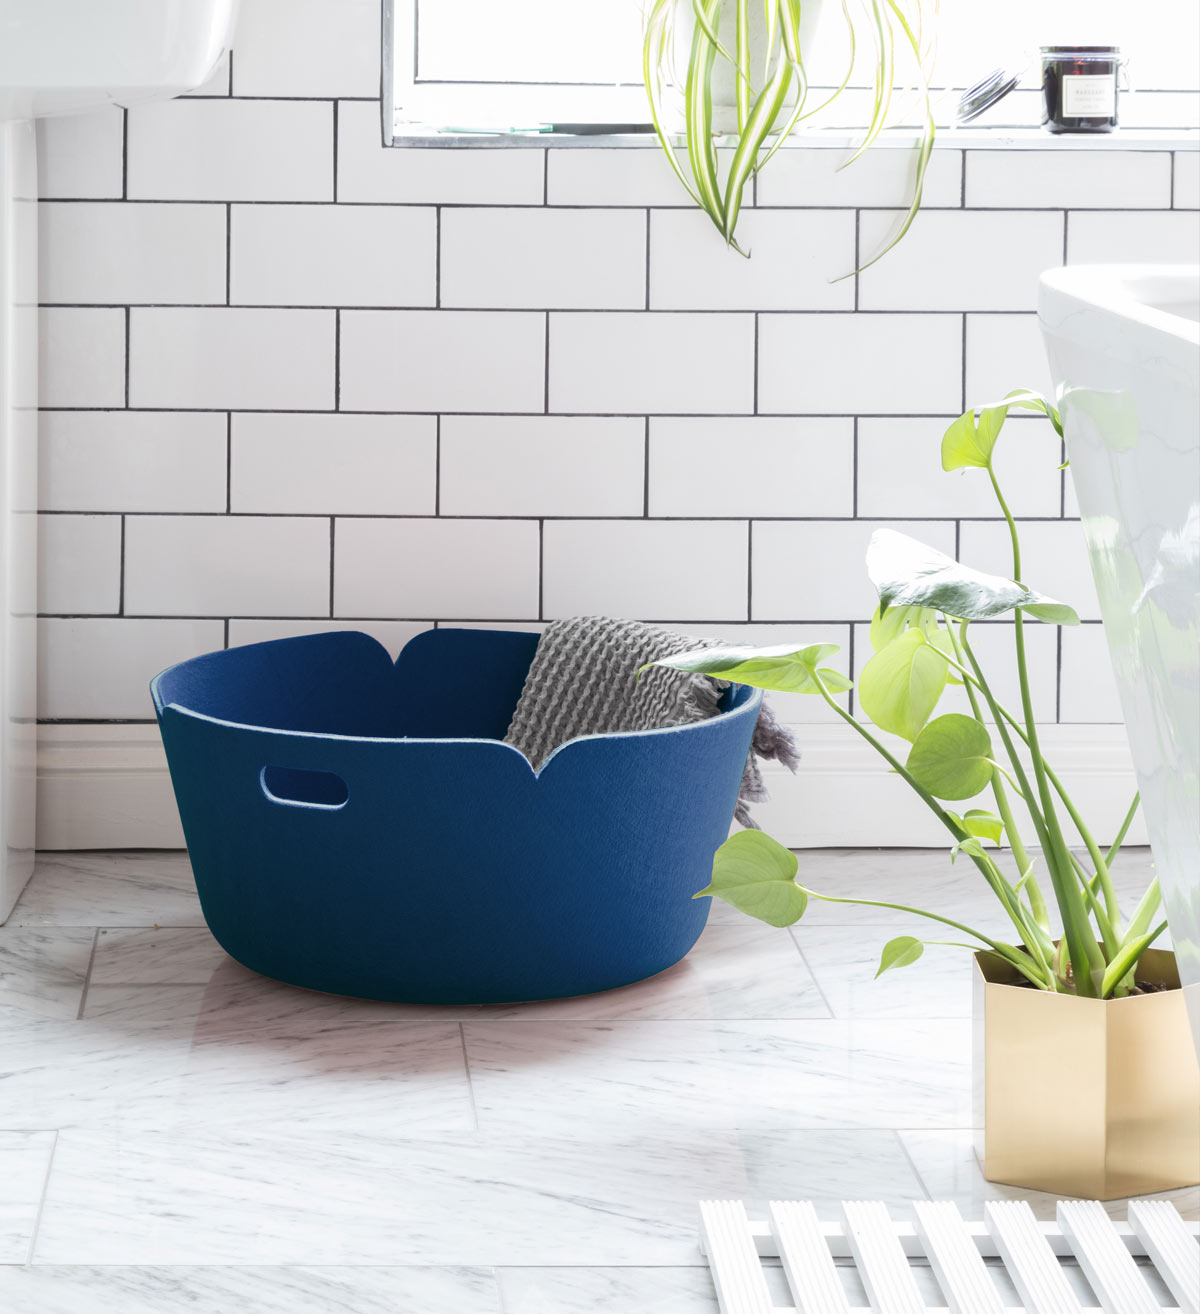 Muuto Restore Basket in bathroom setting.jpg